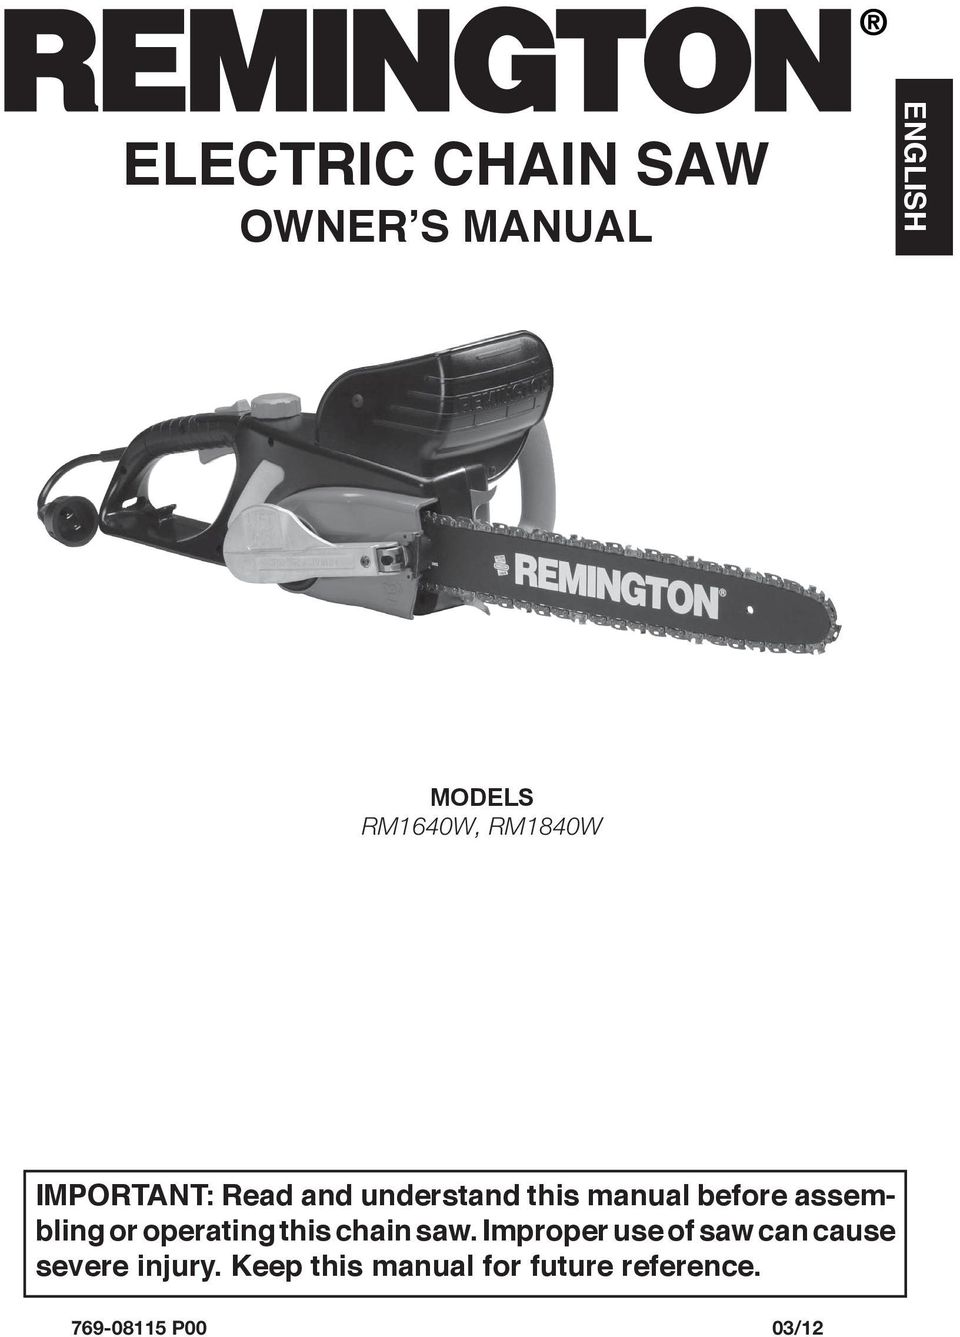 assembling or operating this chain saw.